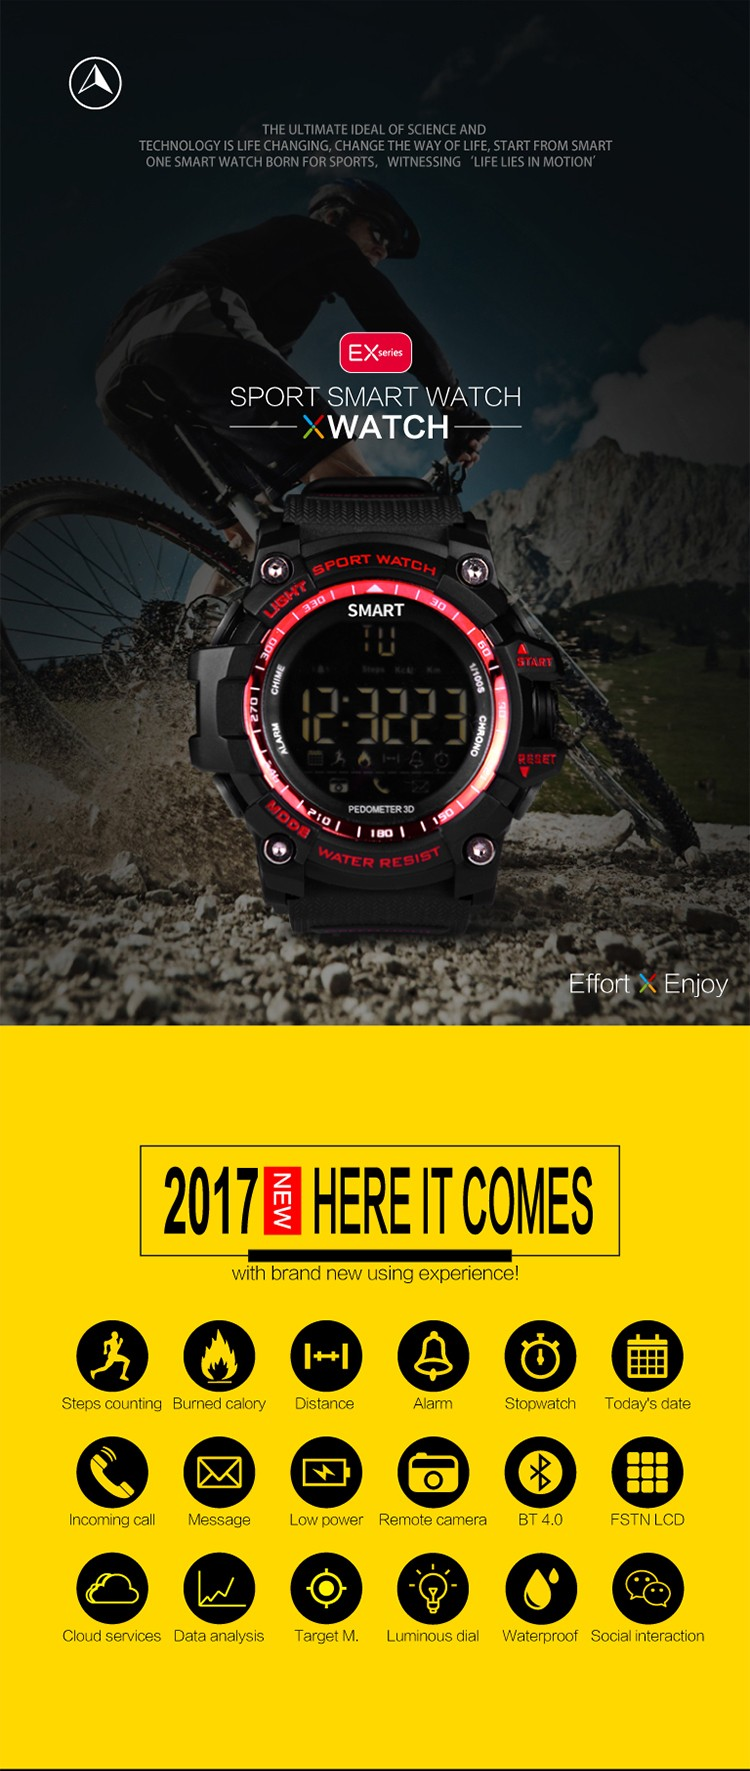 "E16 1.12"" FSTN LCD Dispaly incoming call reminding IP67 Waterproof CR2032 button battery Bluetooth 4.0 version sport wristwatch"